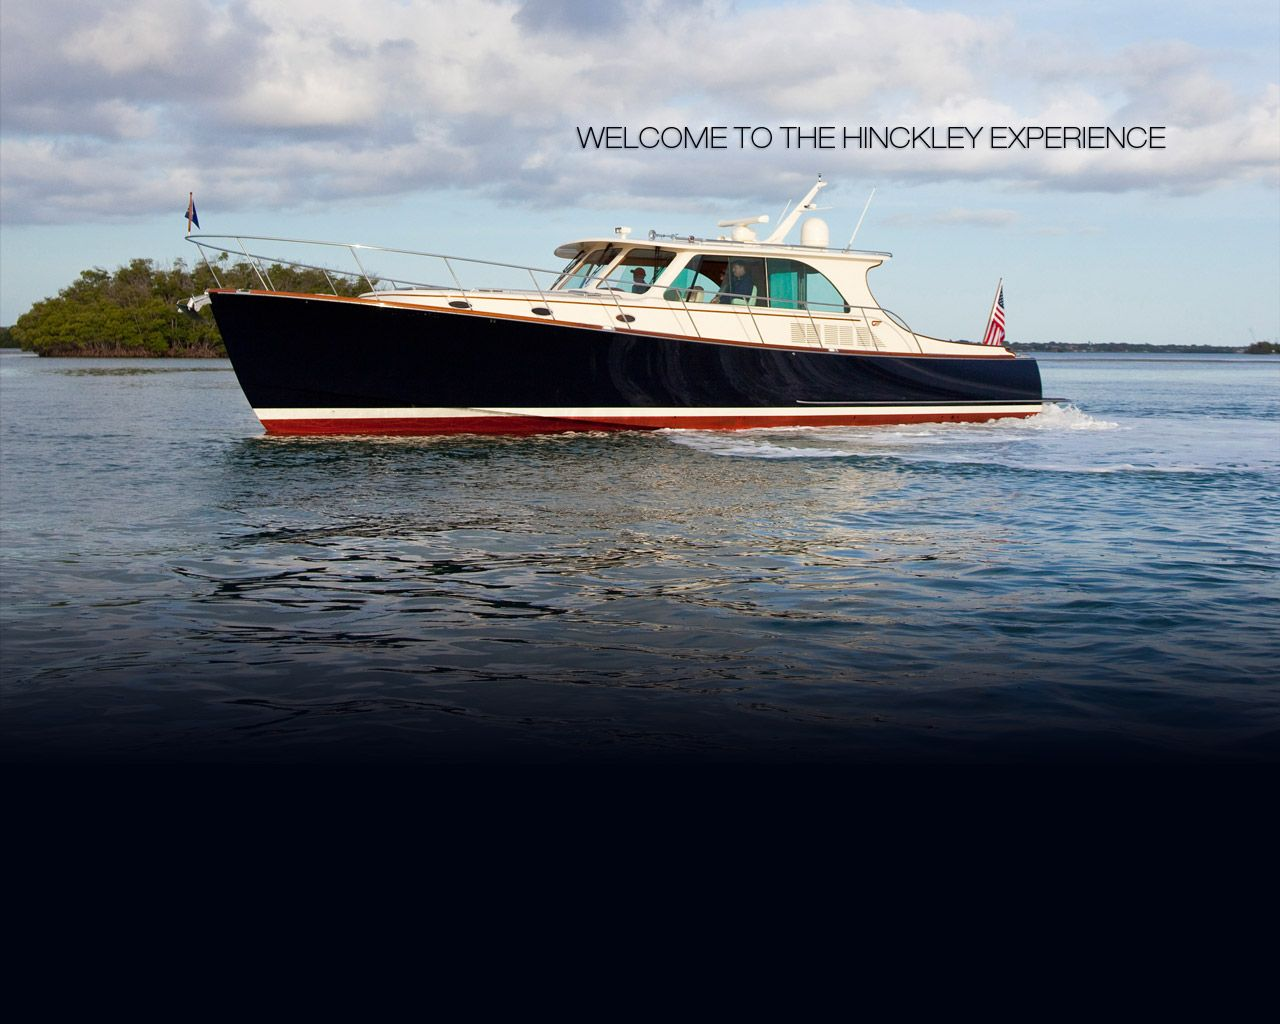 Boats yachts maine boats lobster boats picnic boats sailing - Welcome To Hinckley Luxury Boats Yachts Maine Boats Lobster Boats Picnic